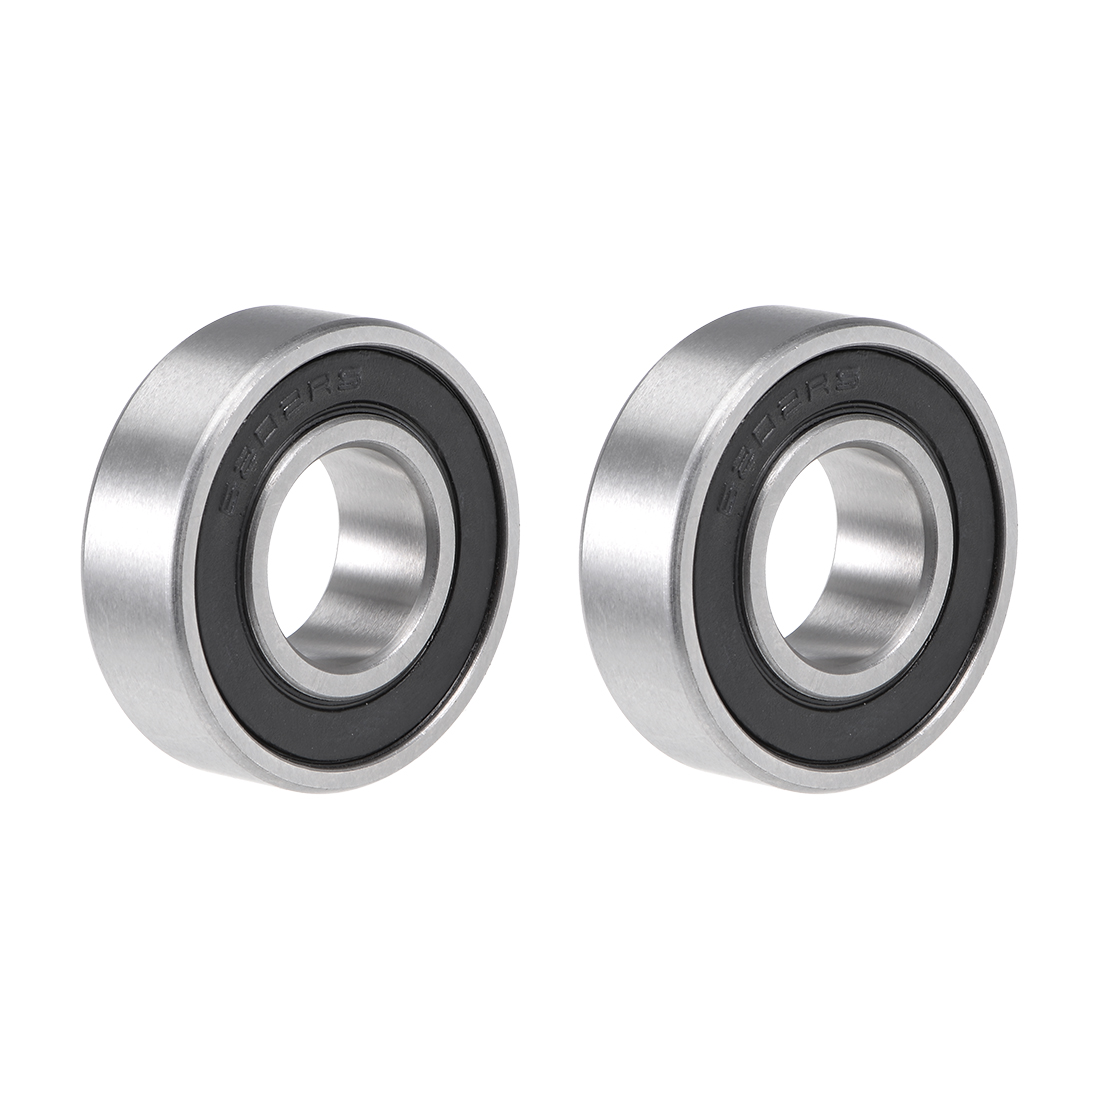 Uxcell 6202-16-2RS Deep Groove Ball Bearing 16x35x11mm Double Sealed Chrome Steel Z2 Lever Bearings 2pcs